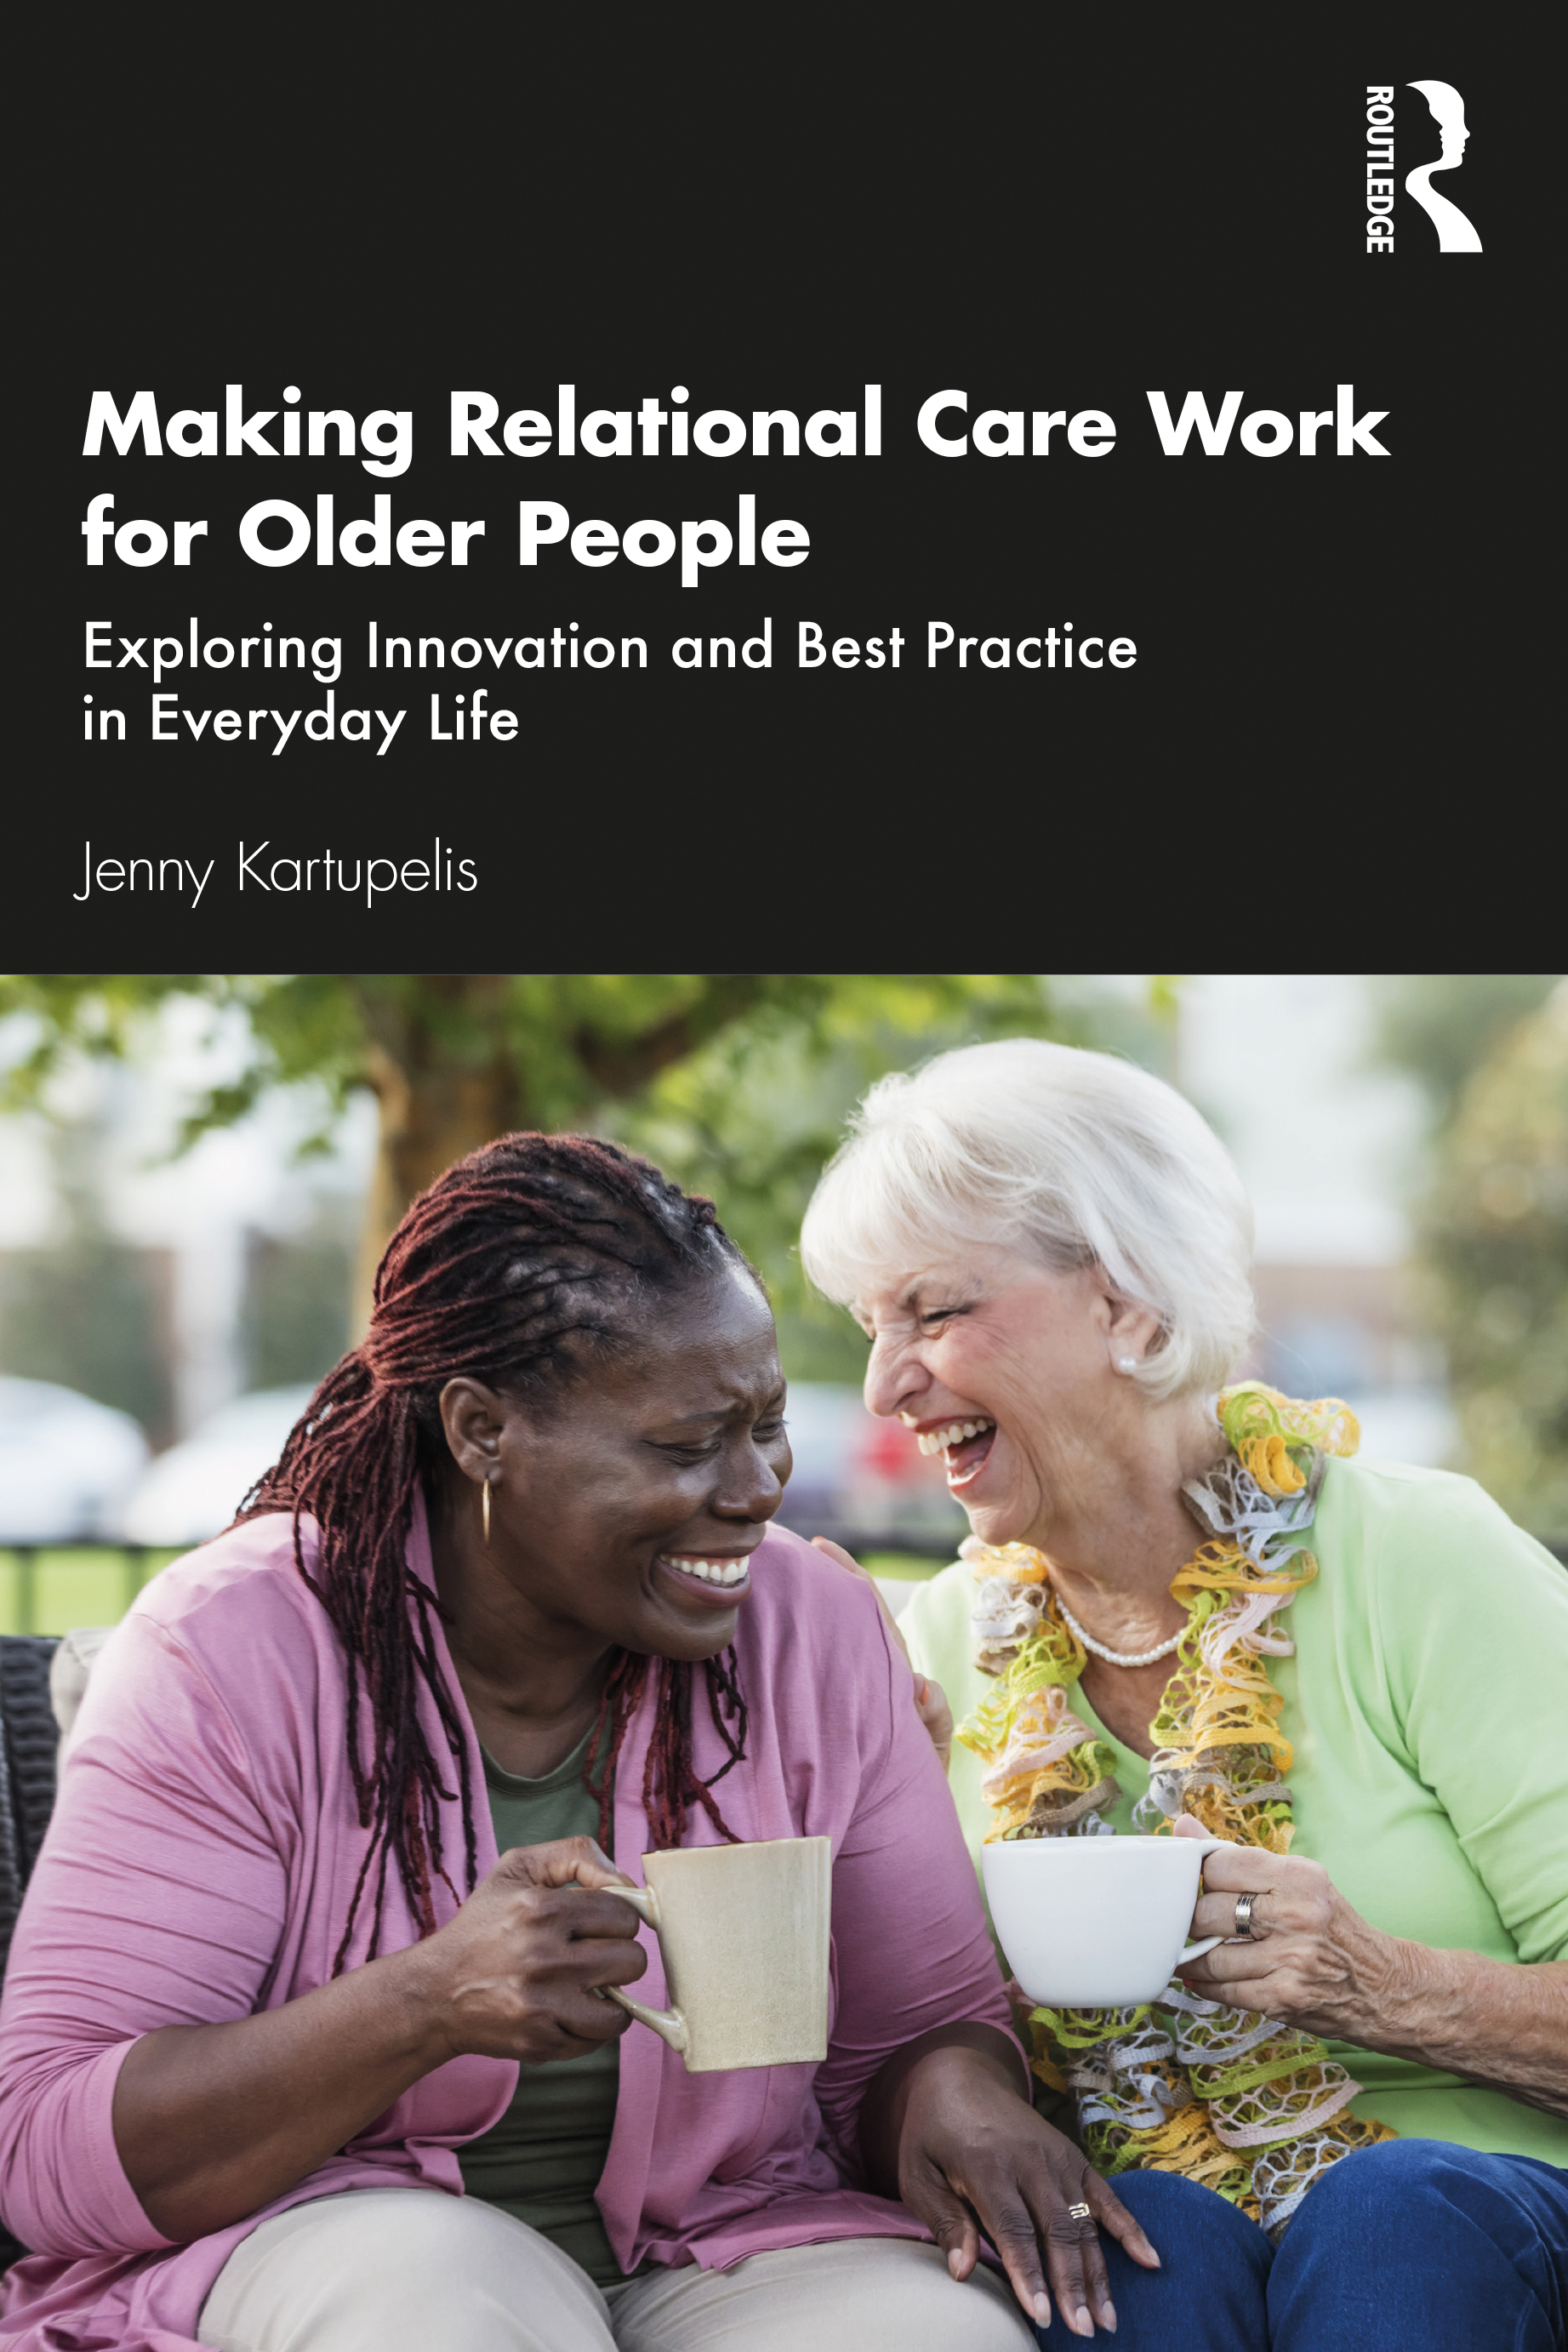 Making Relational Care Work for Older People